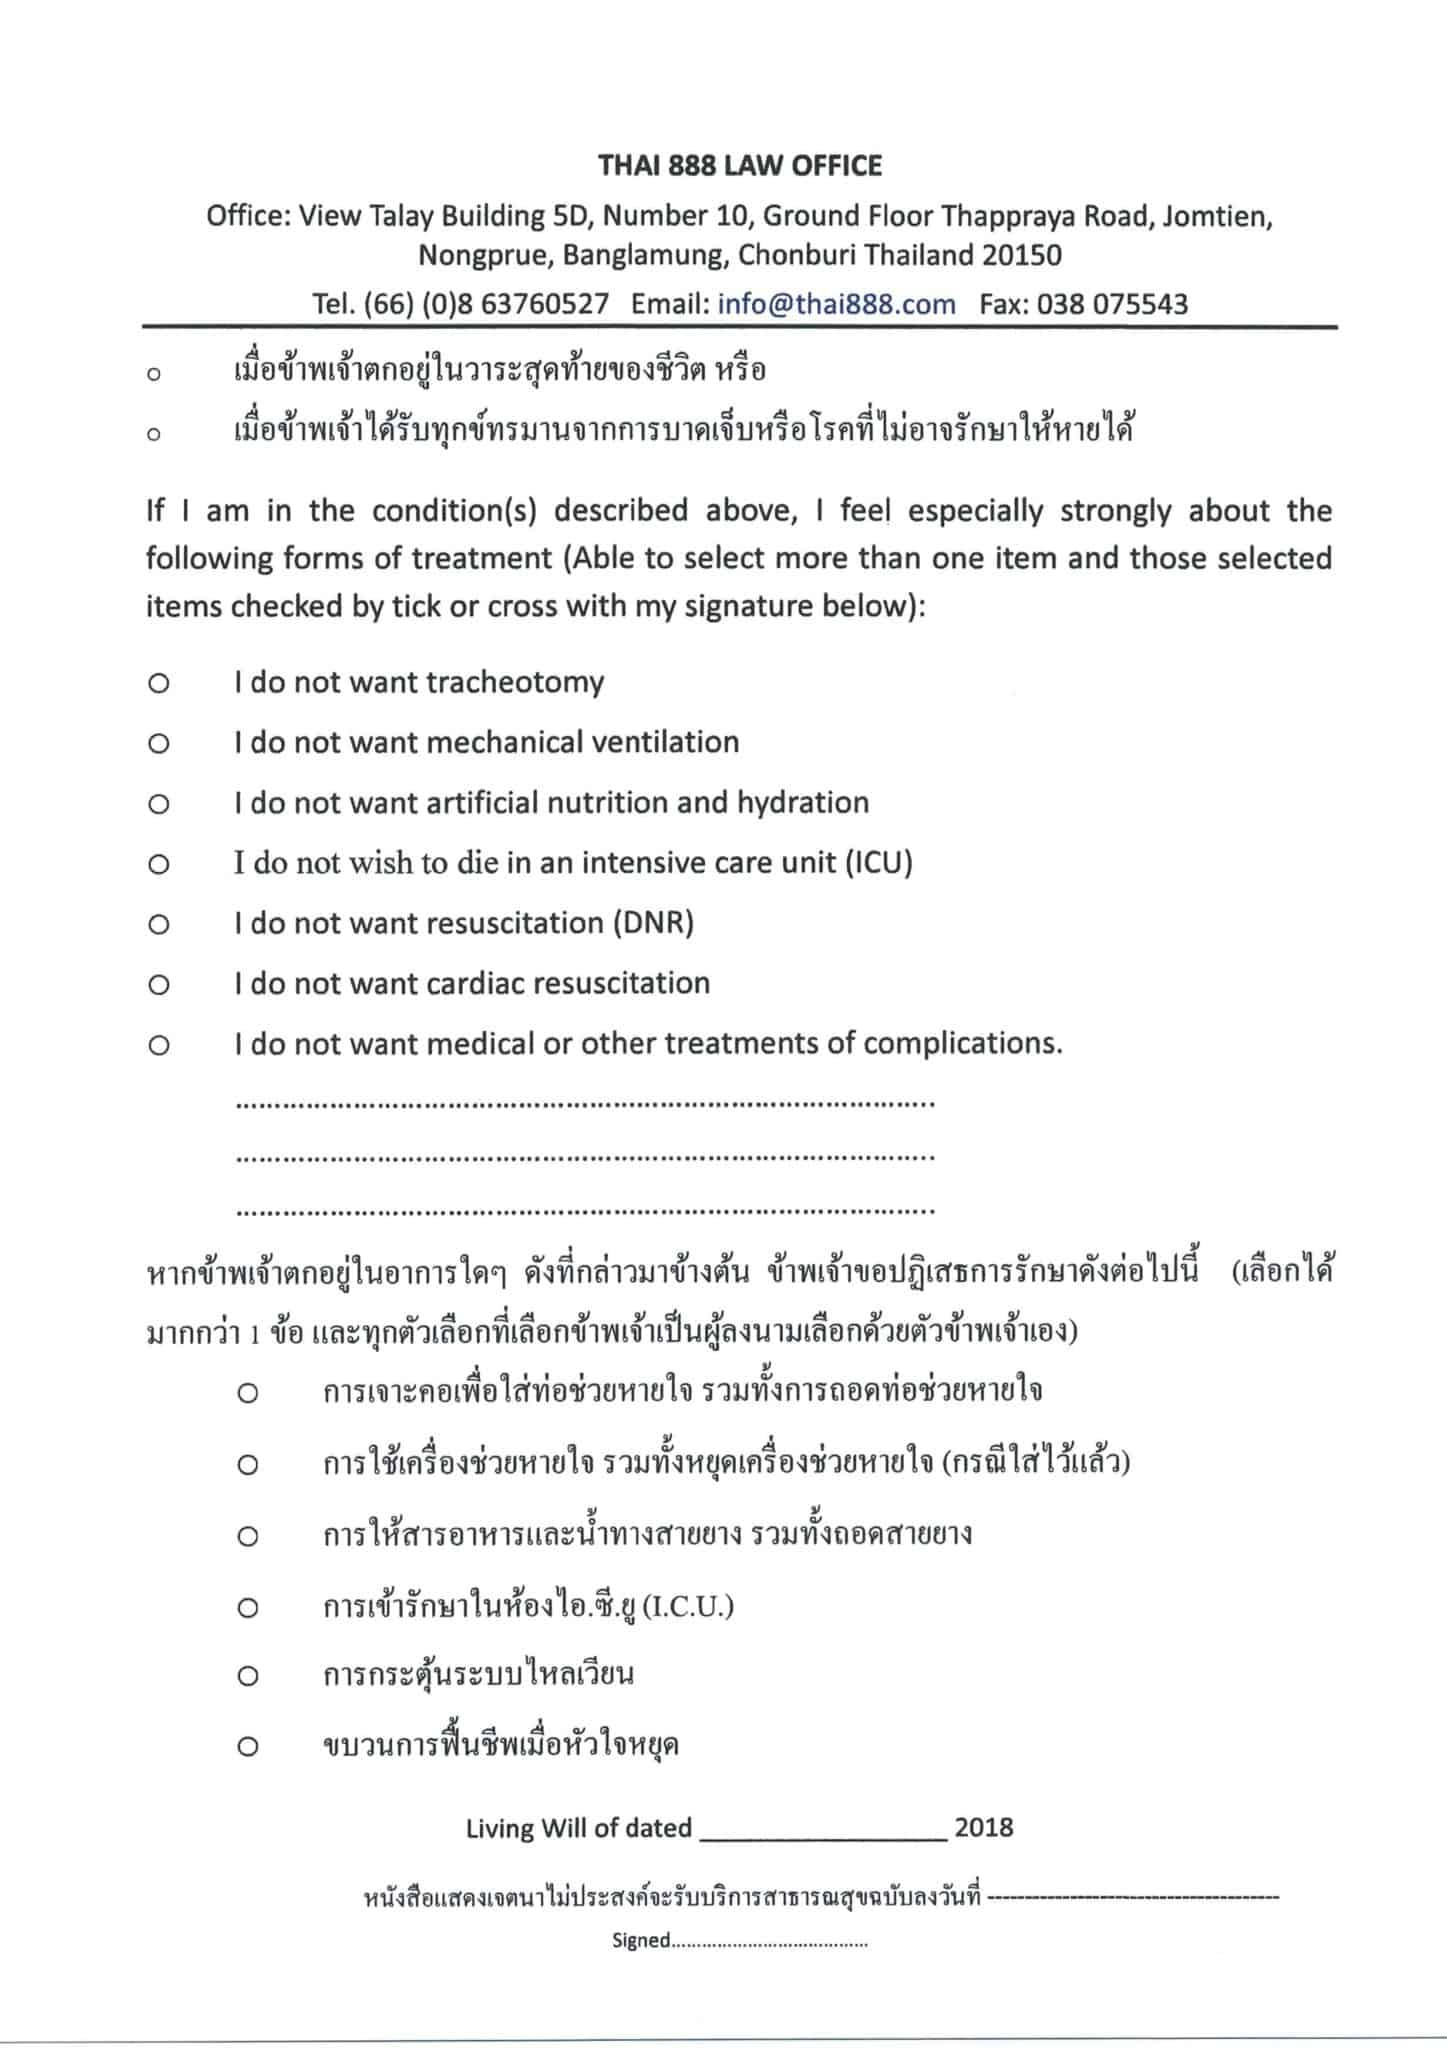 Living Will by Thai888 Law what is it and how to make one